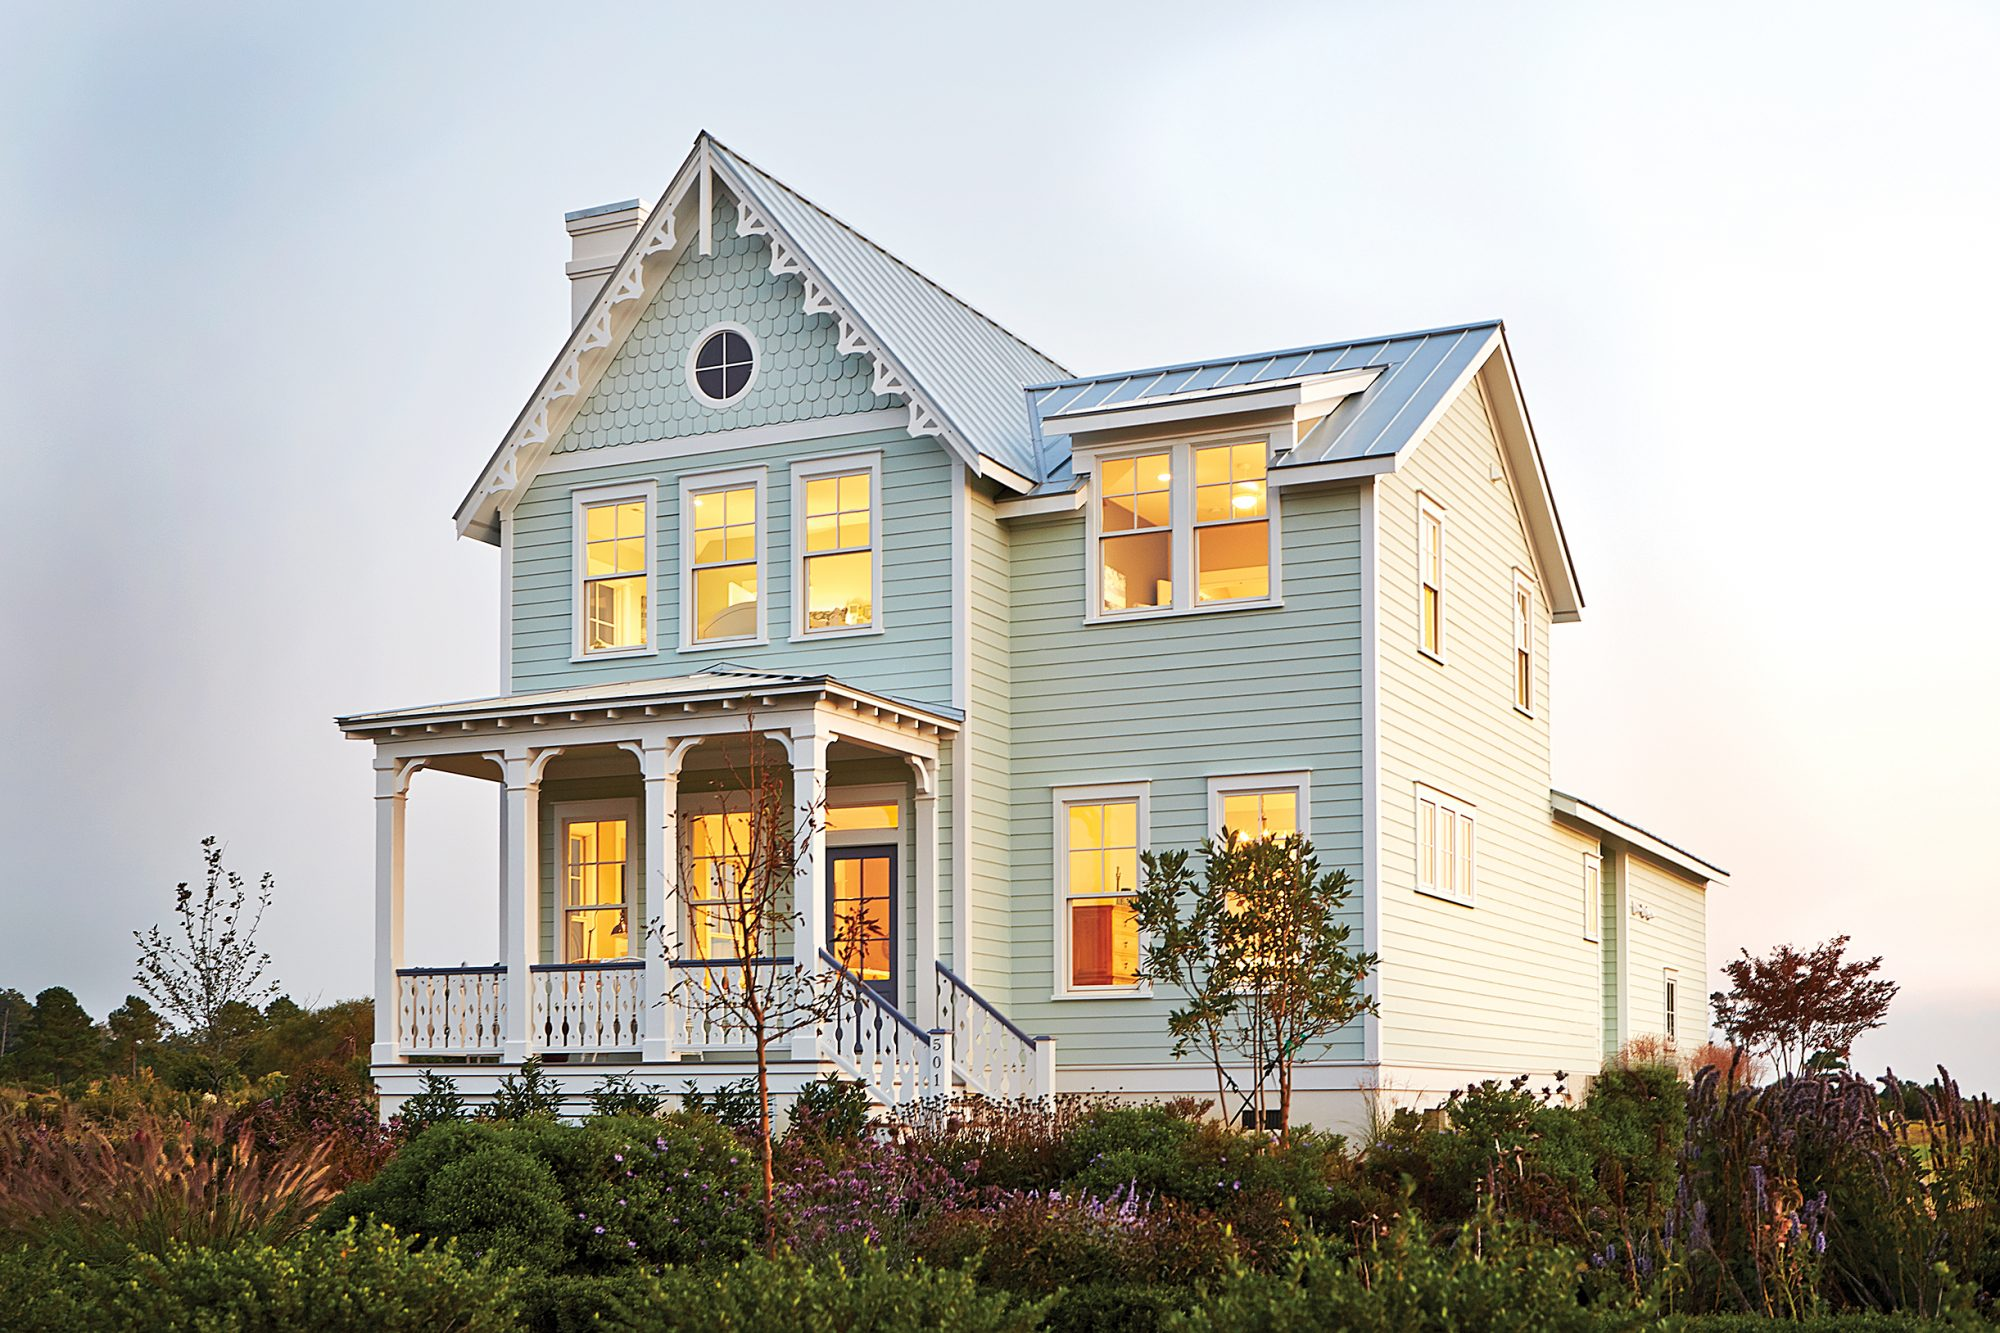 Dreamy house plans built for retirement southern living bay creek malvernweather Image collections